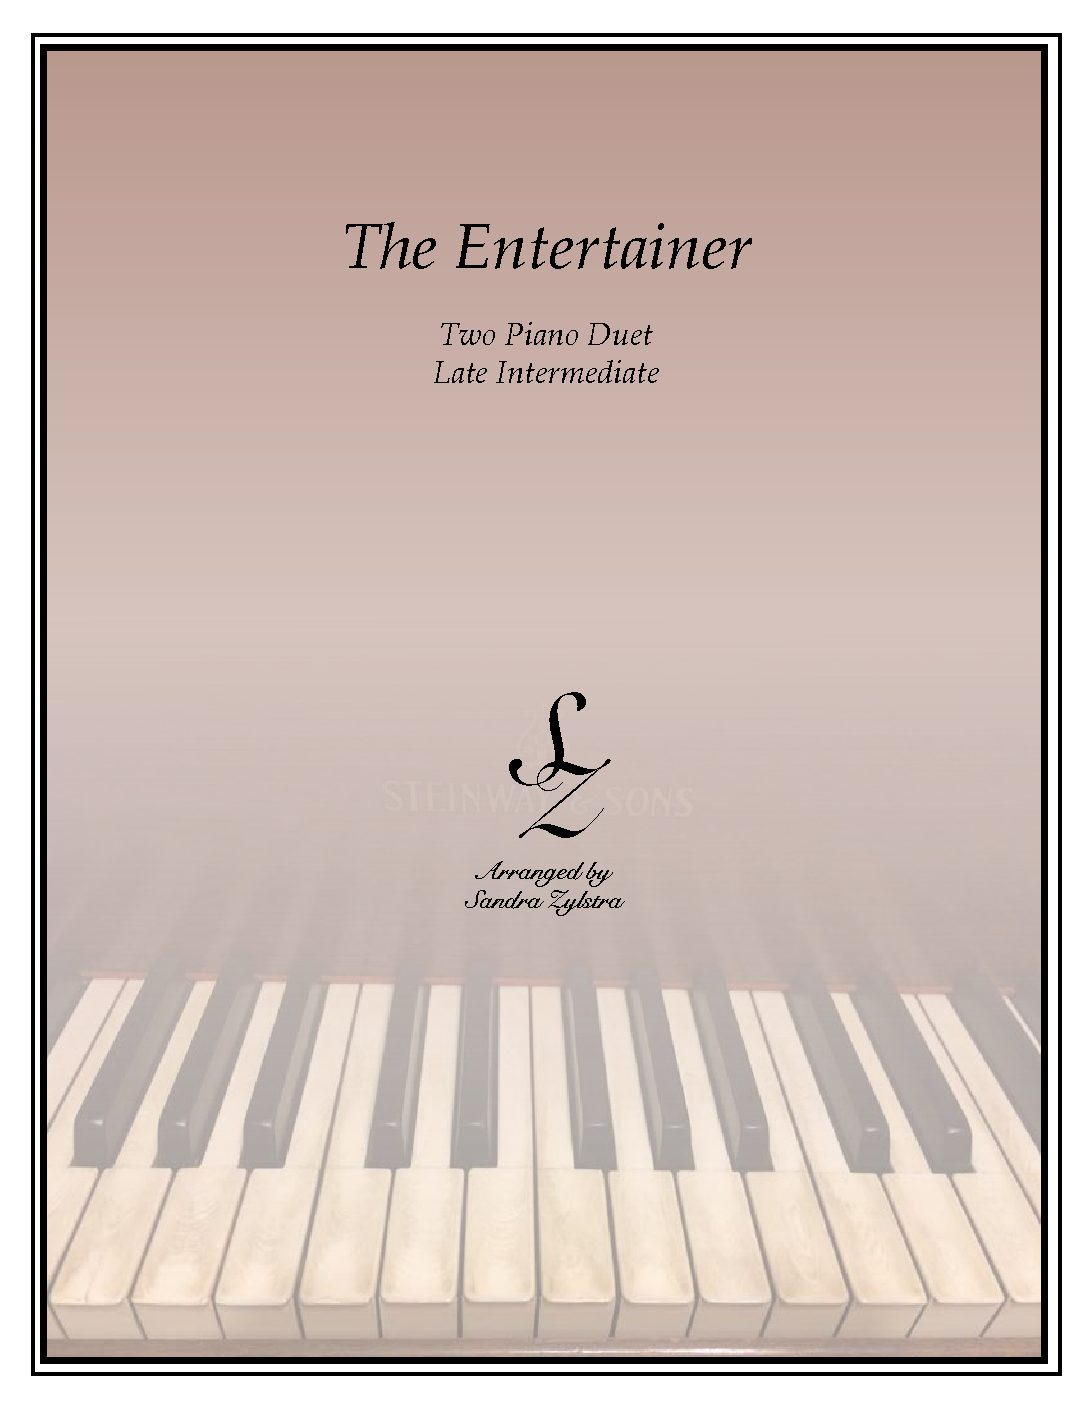 The Entertainer -Two Piano Duet